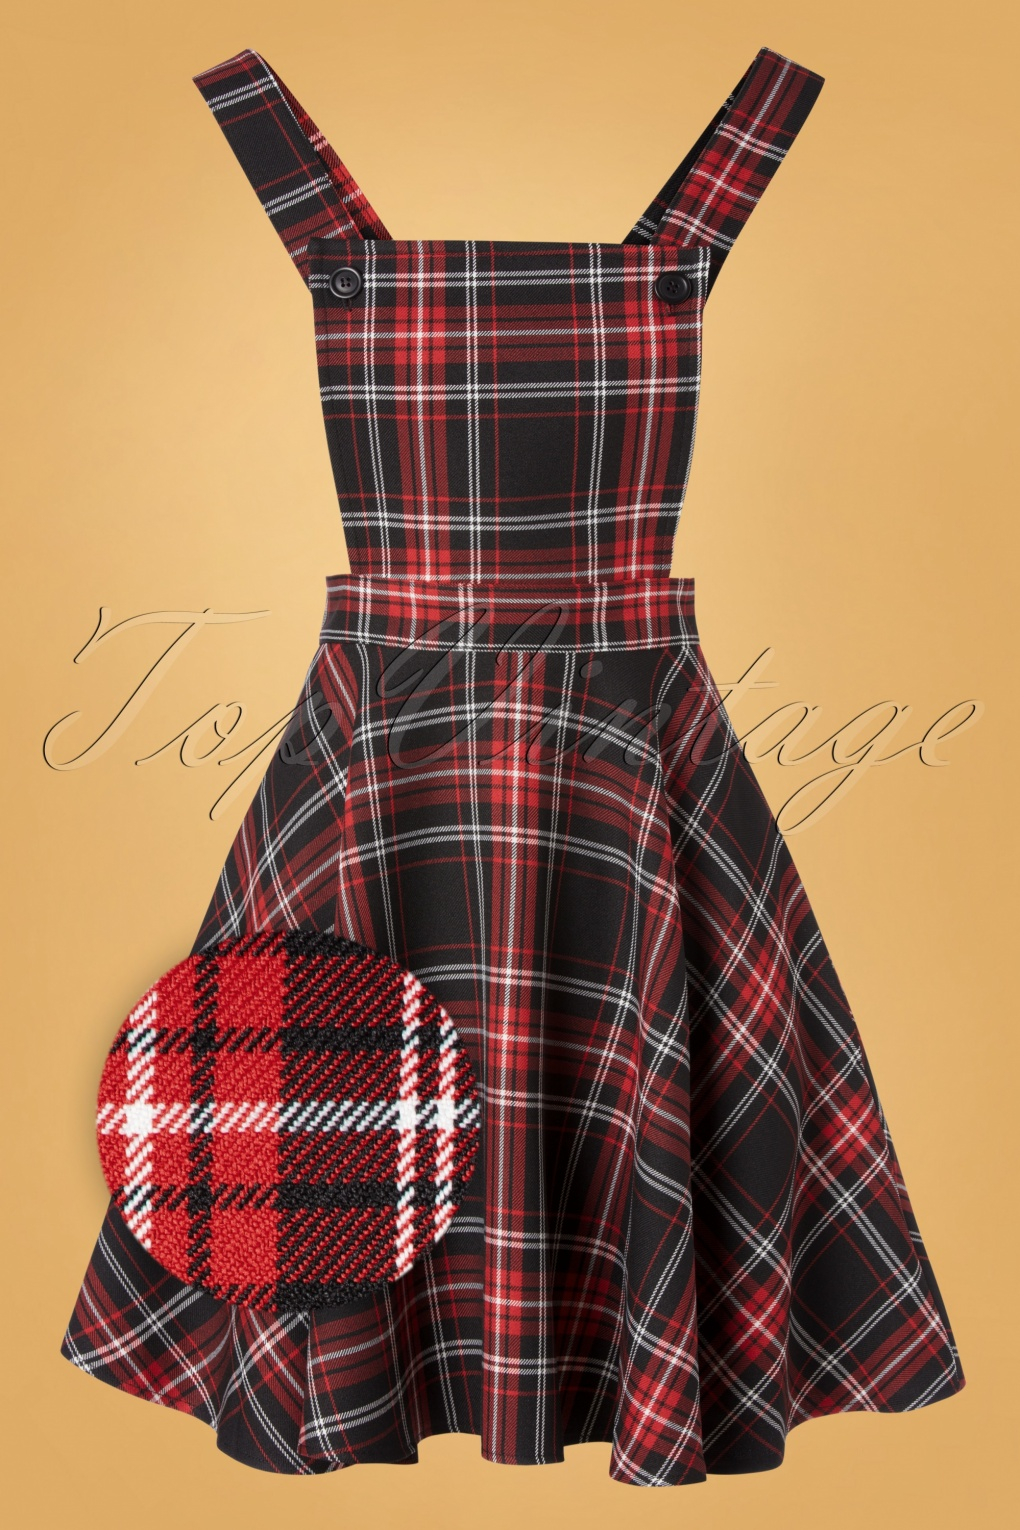 Swing Dance Dresses | Lindy Hop Dresses & Clothing 60s Islay Tartan Pinafore Dress in Black and Red £49.66 AT vintagedancer.com